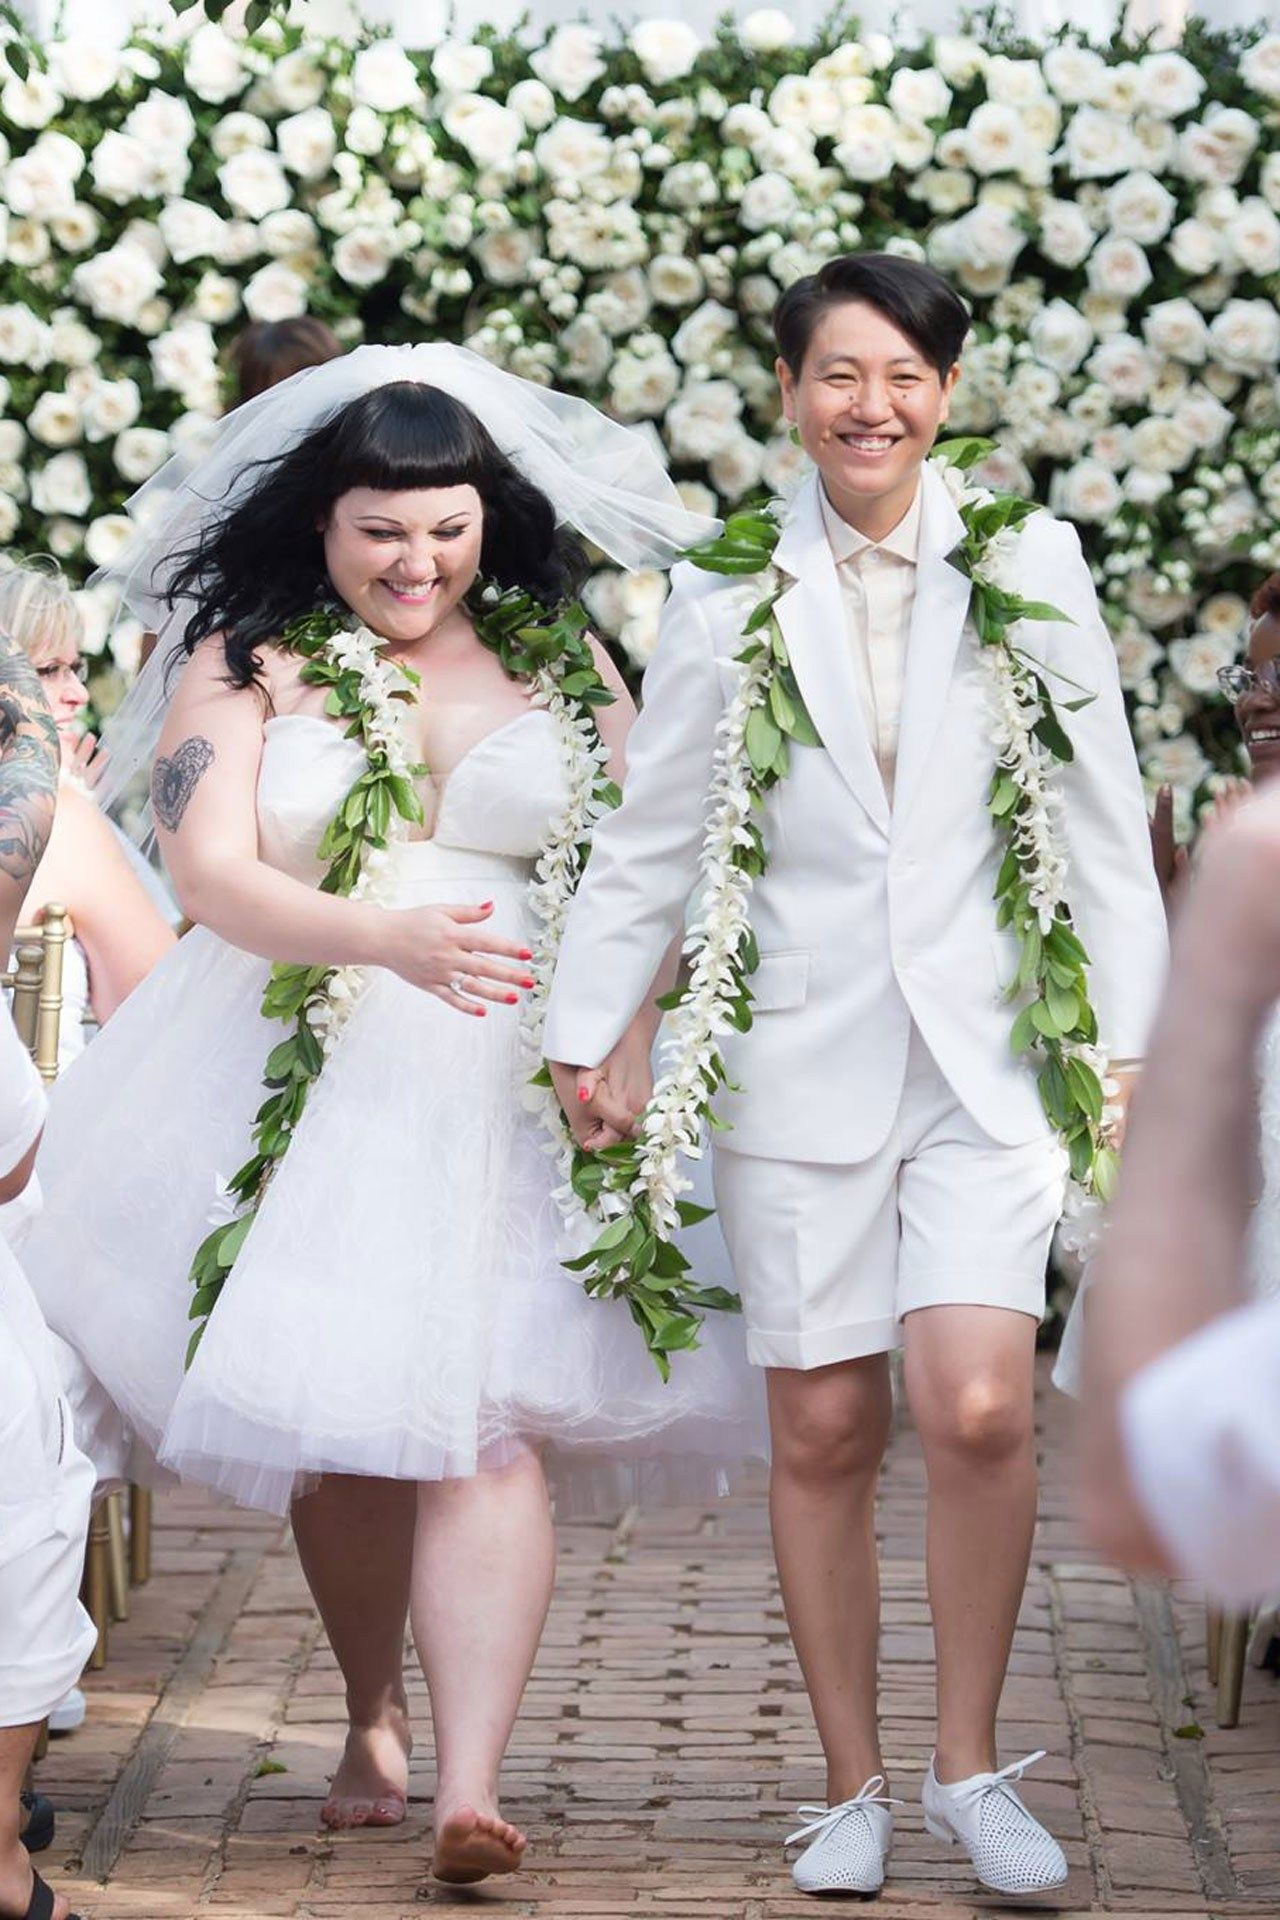 Congratulations to #feminist Beth Ditto (of The Gossip) — who just married her long-term girlfriend Kristin Ogata on the Hawaiian island of Maui! Wedding details (#JKWC loves the newlyweds' matching floral garlands... and Beth's #JPG Jean Paul Gaultier dress & Kristin's all-white ensemble) http://www.vogue.co.uk/news/2013/07/24/beth-ditto-wedding-details---jean-paul-gaultier-wedding-dress